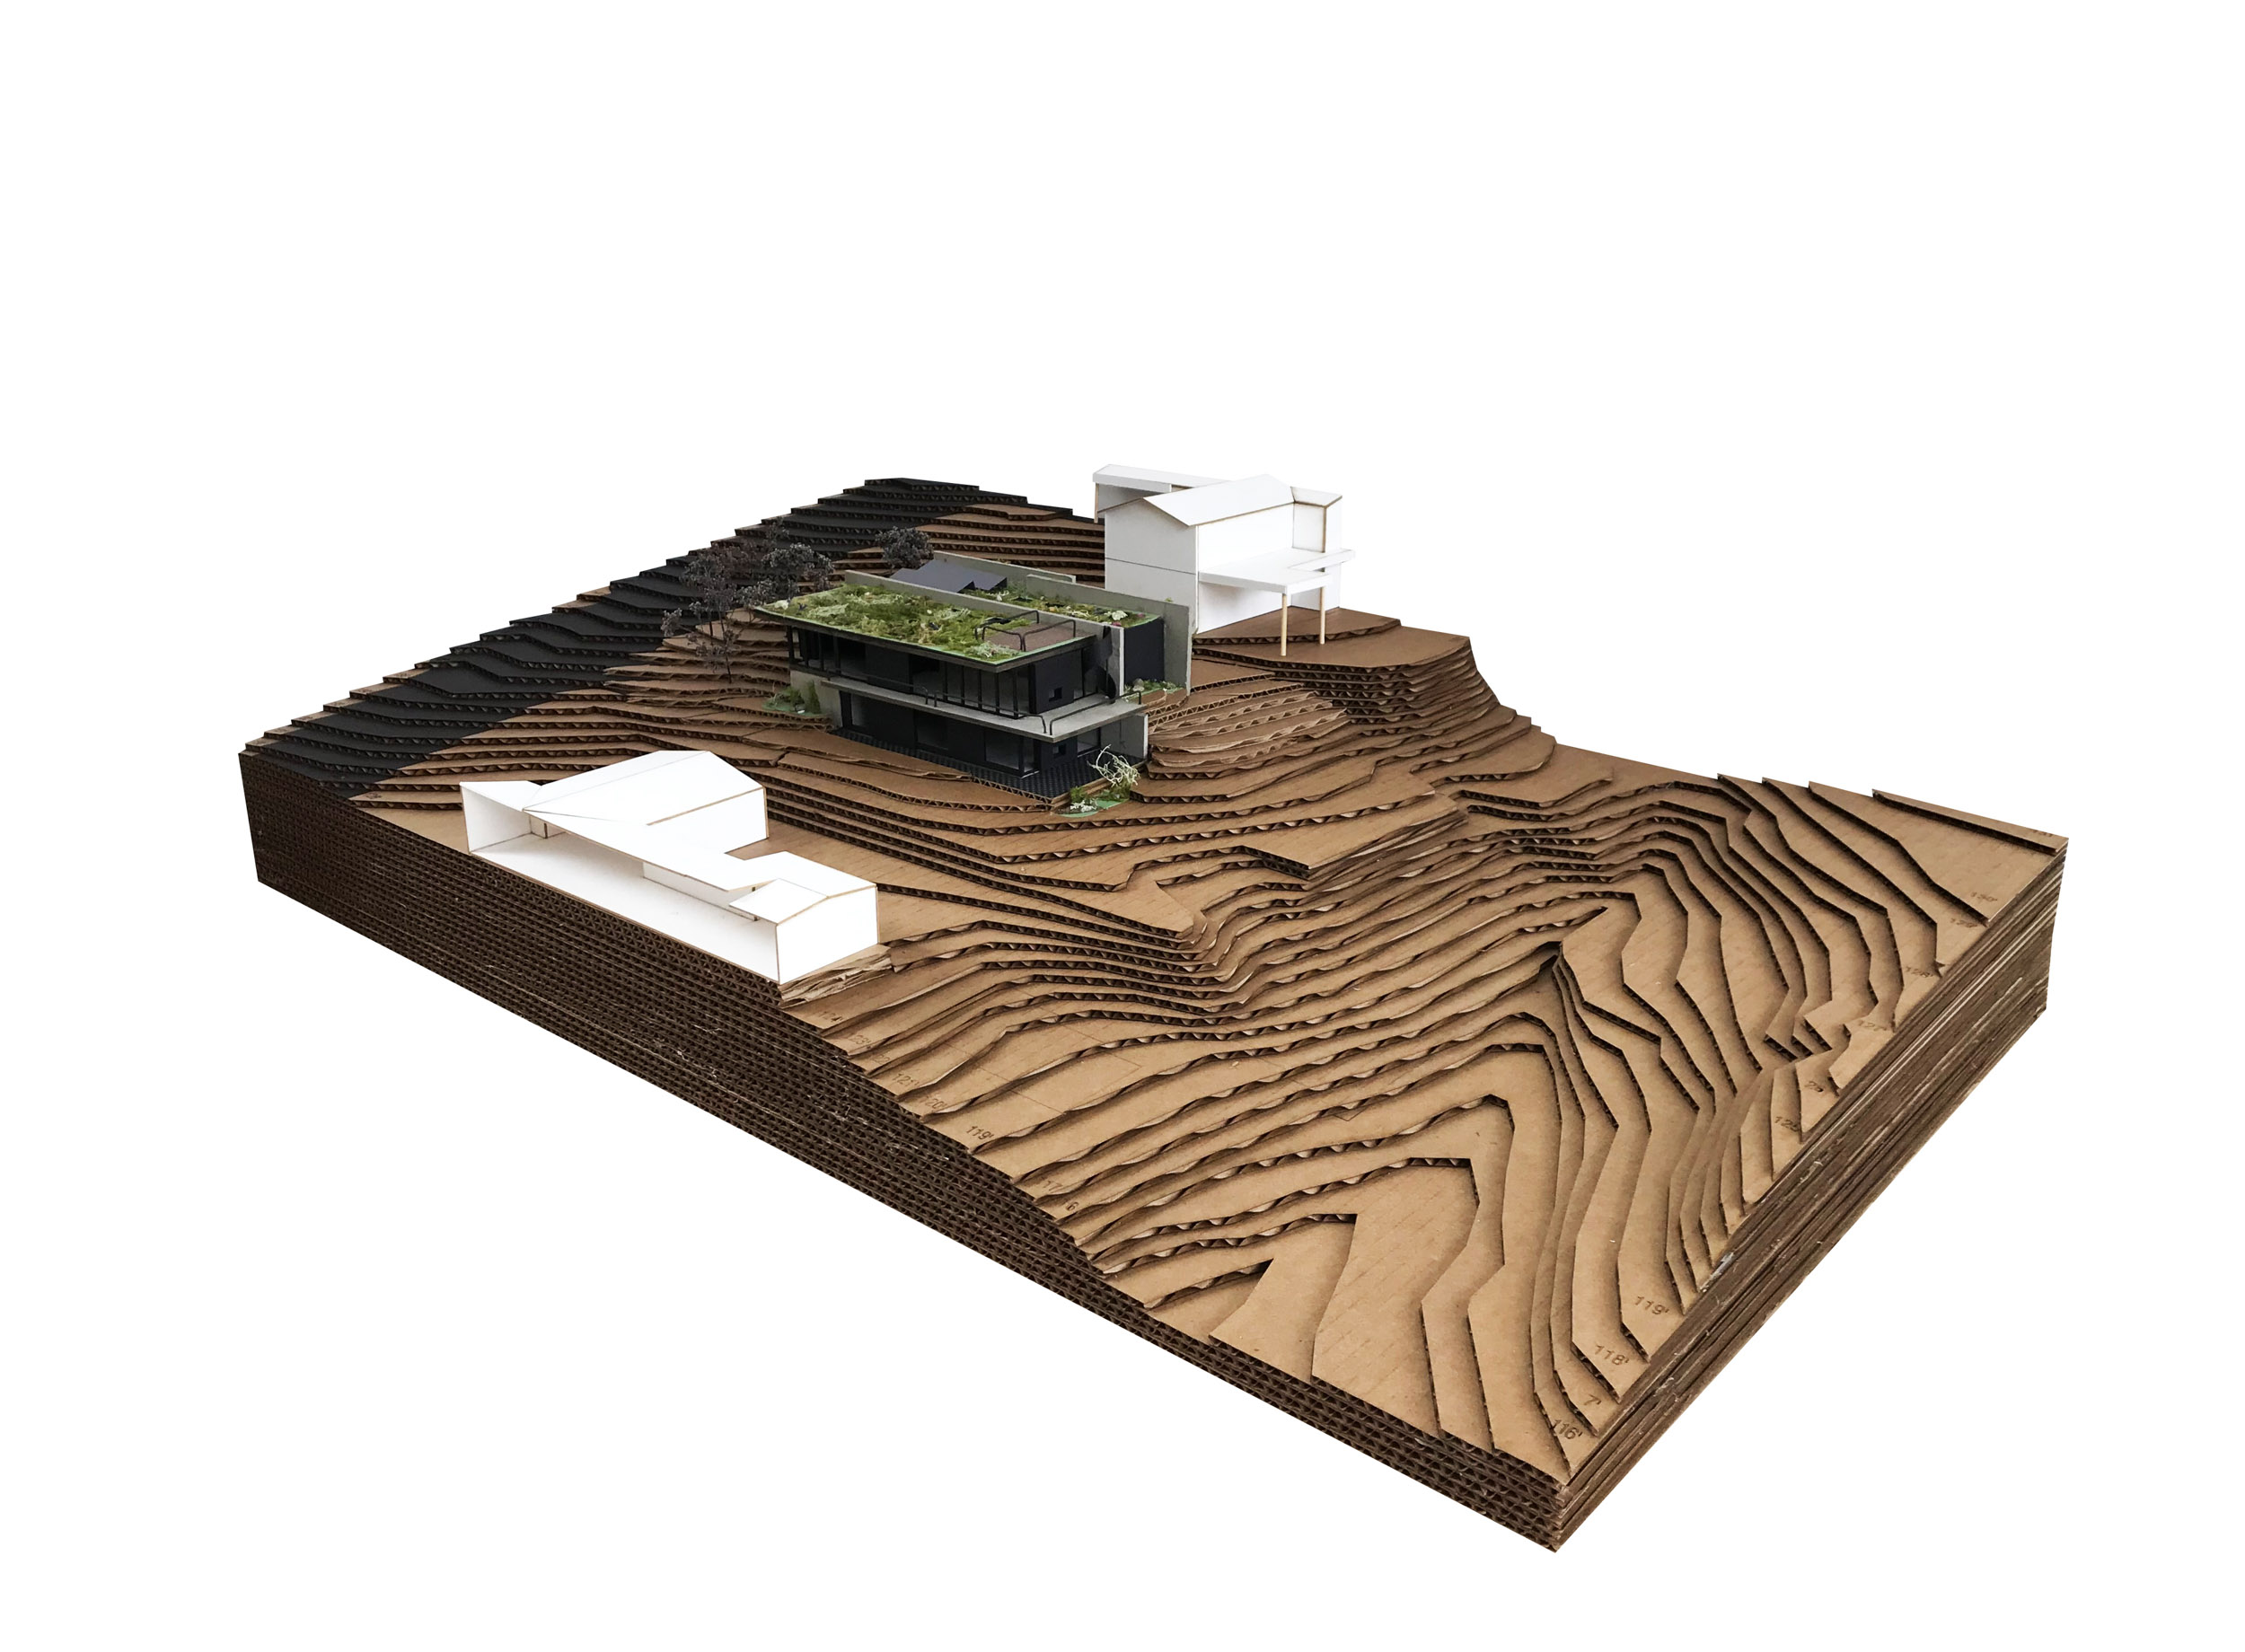 wc-studio-engawa-house-cardboard-architectural-model-topography.jpg